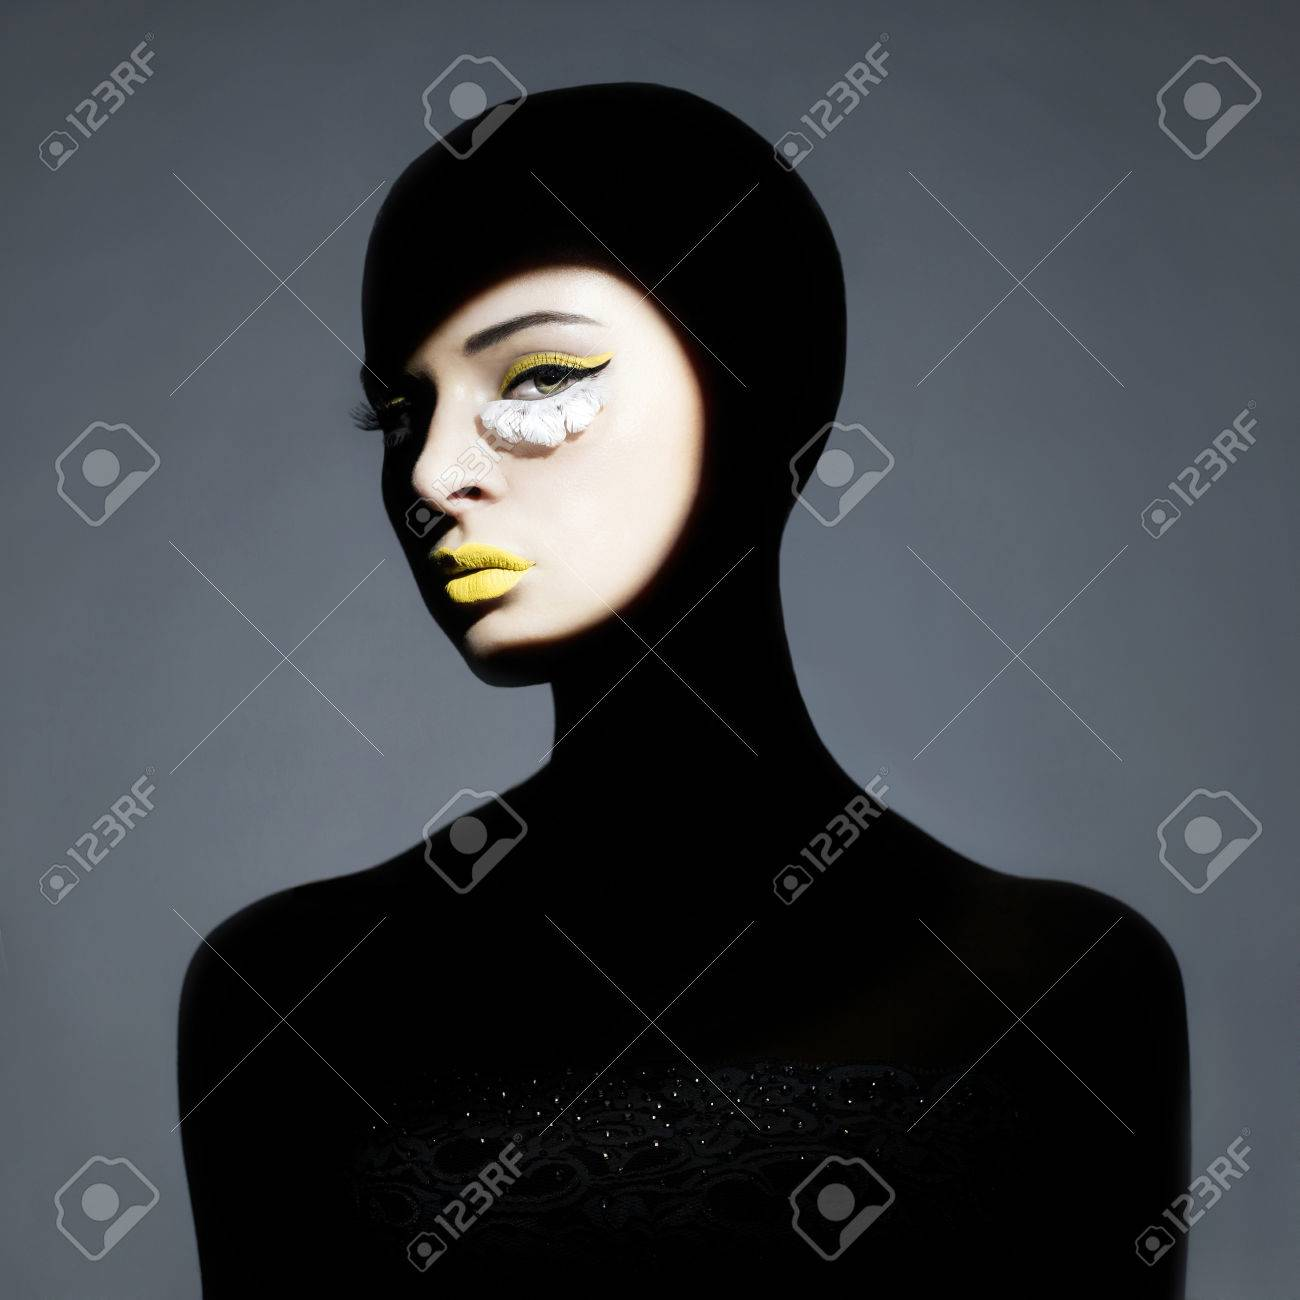 Surrealist portrait of young lady with art makeup Stock Photo - 28081545